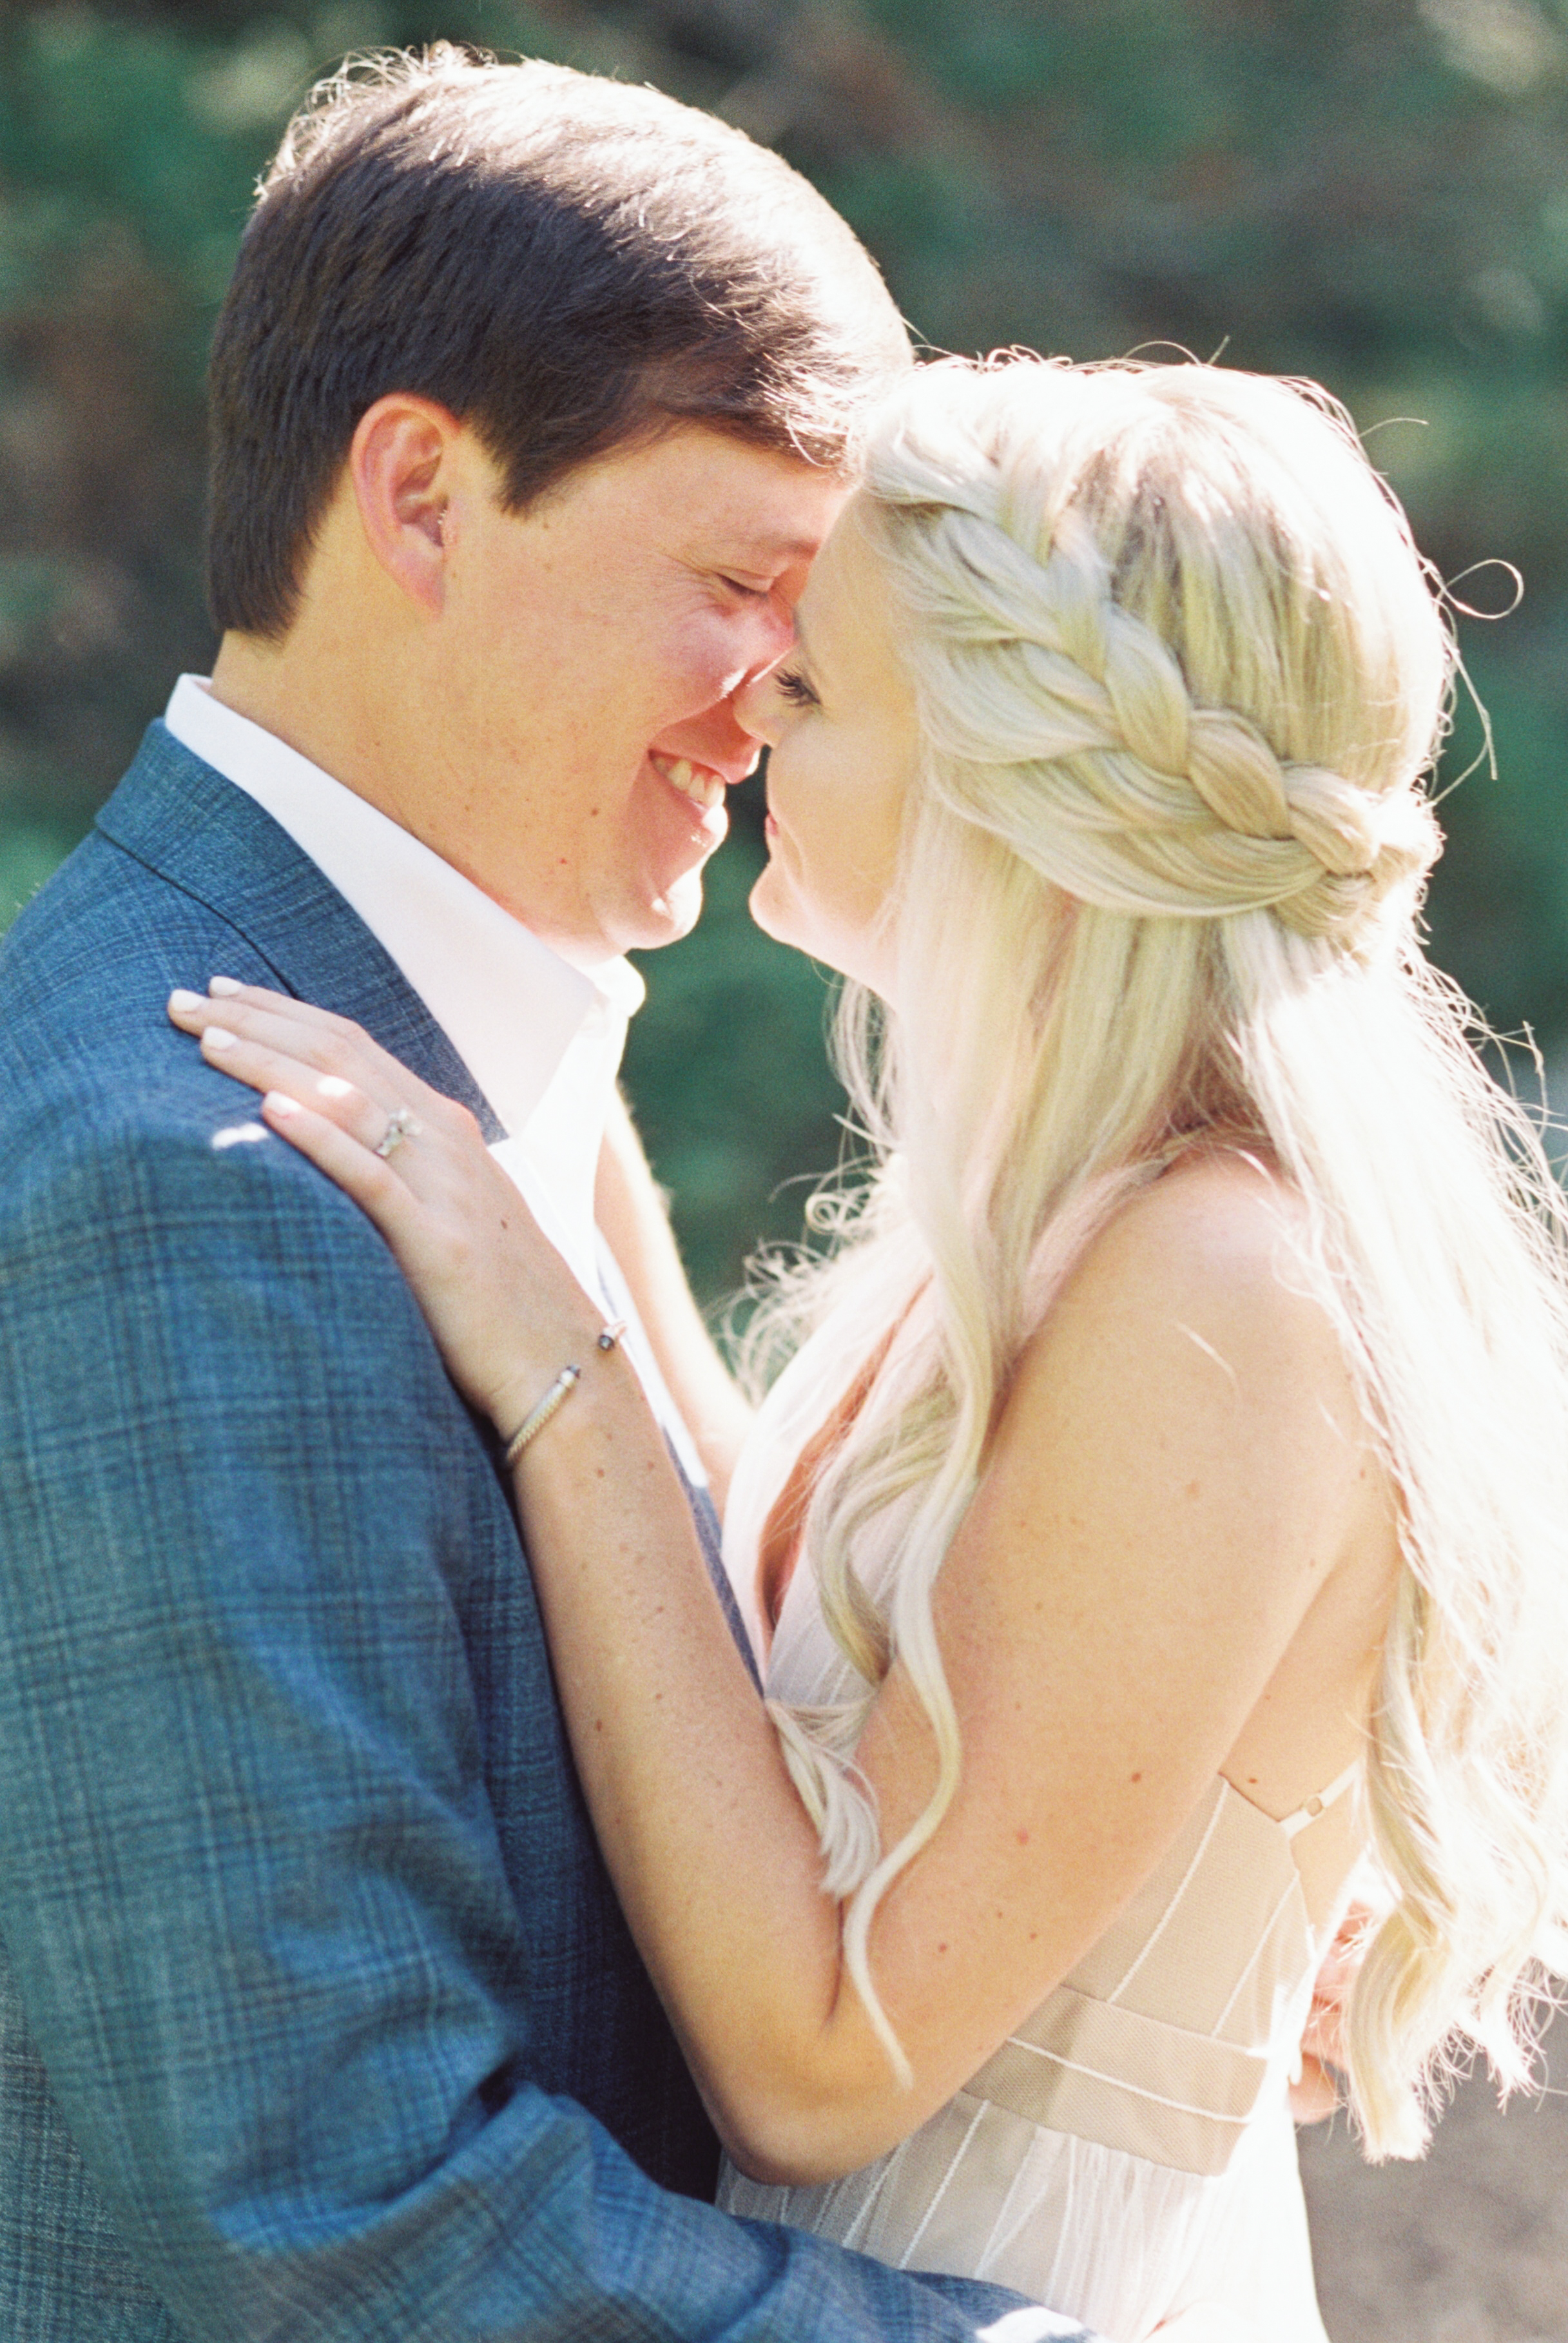 Erin_Johnny_Engagement_Dunaway_Gardens_Georgia_Film_Fallen_Photography-45.JPG